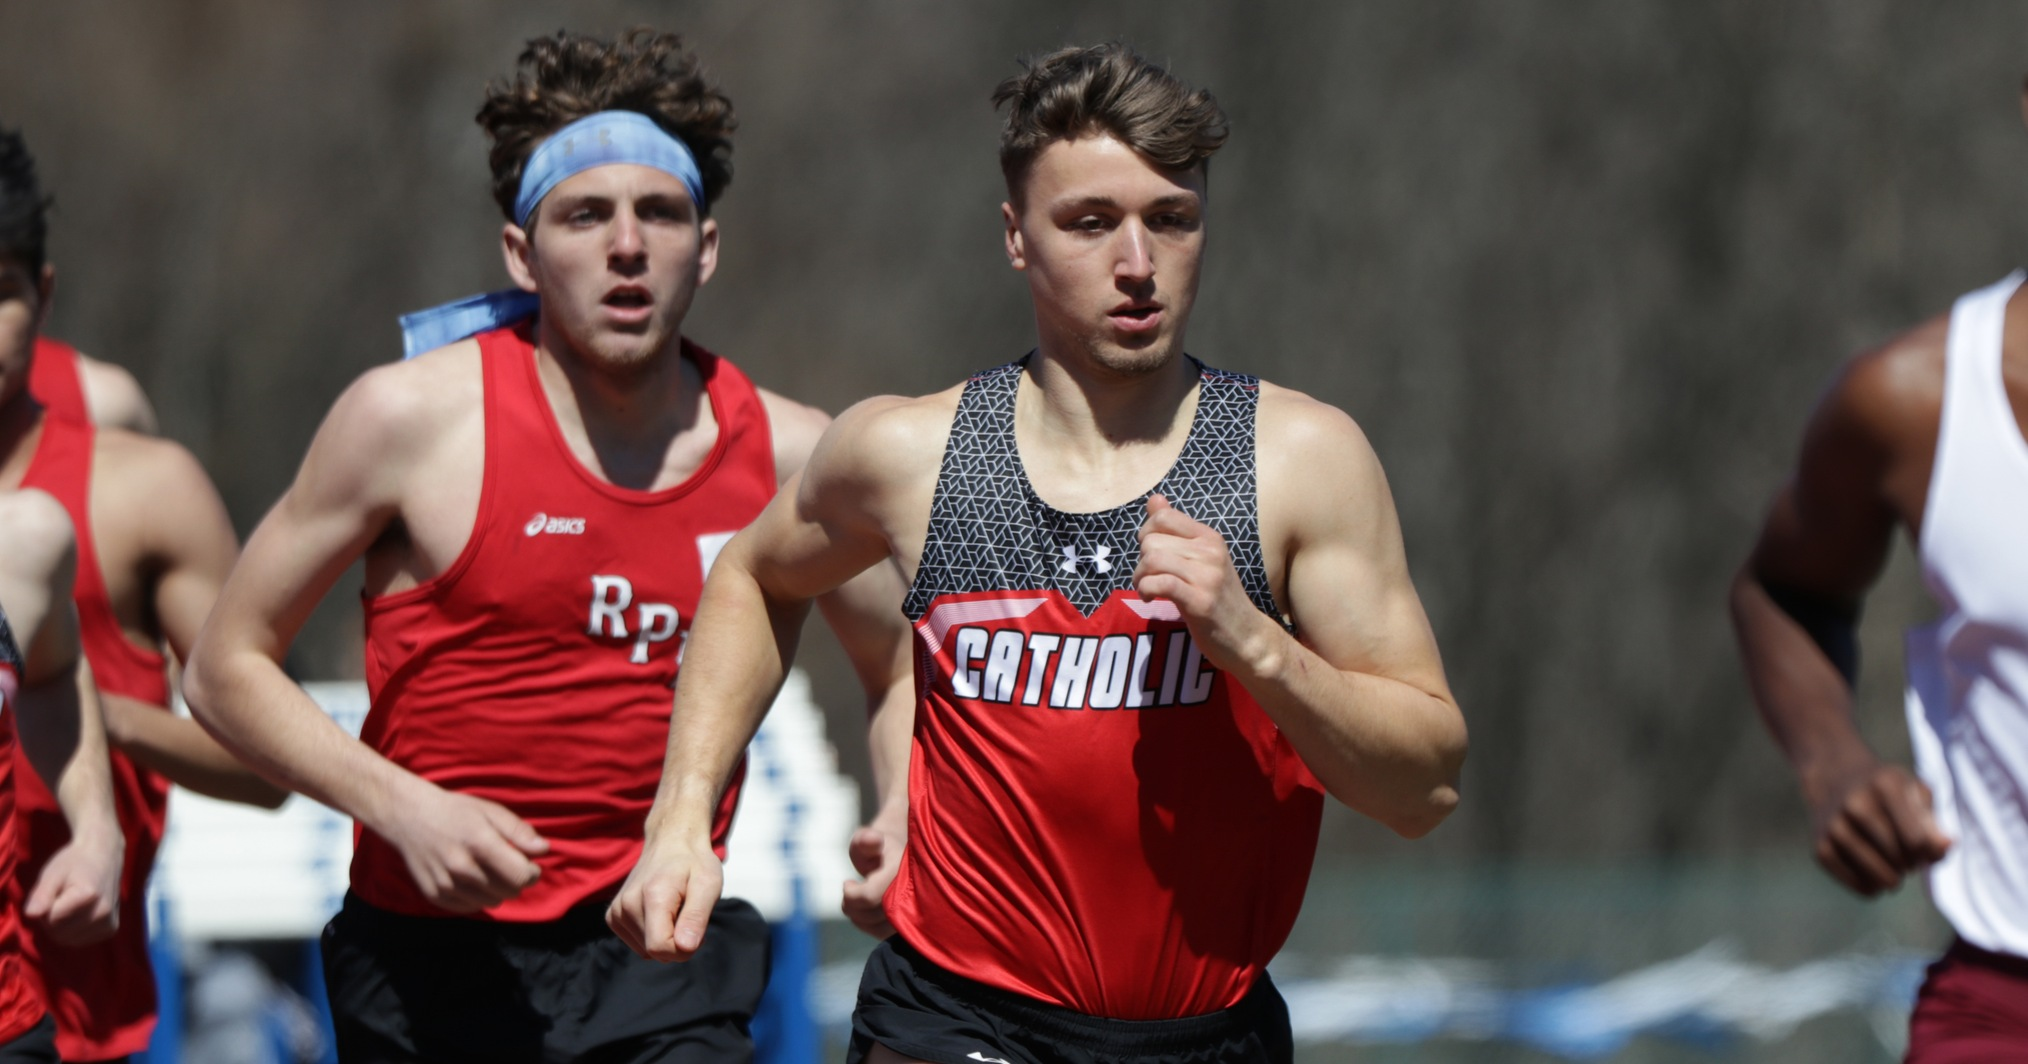 Cardinals Compete at the Coach P Open